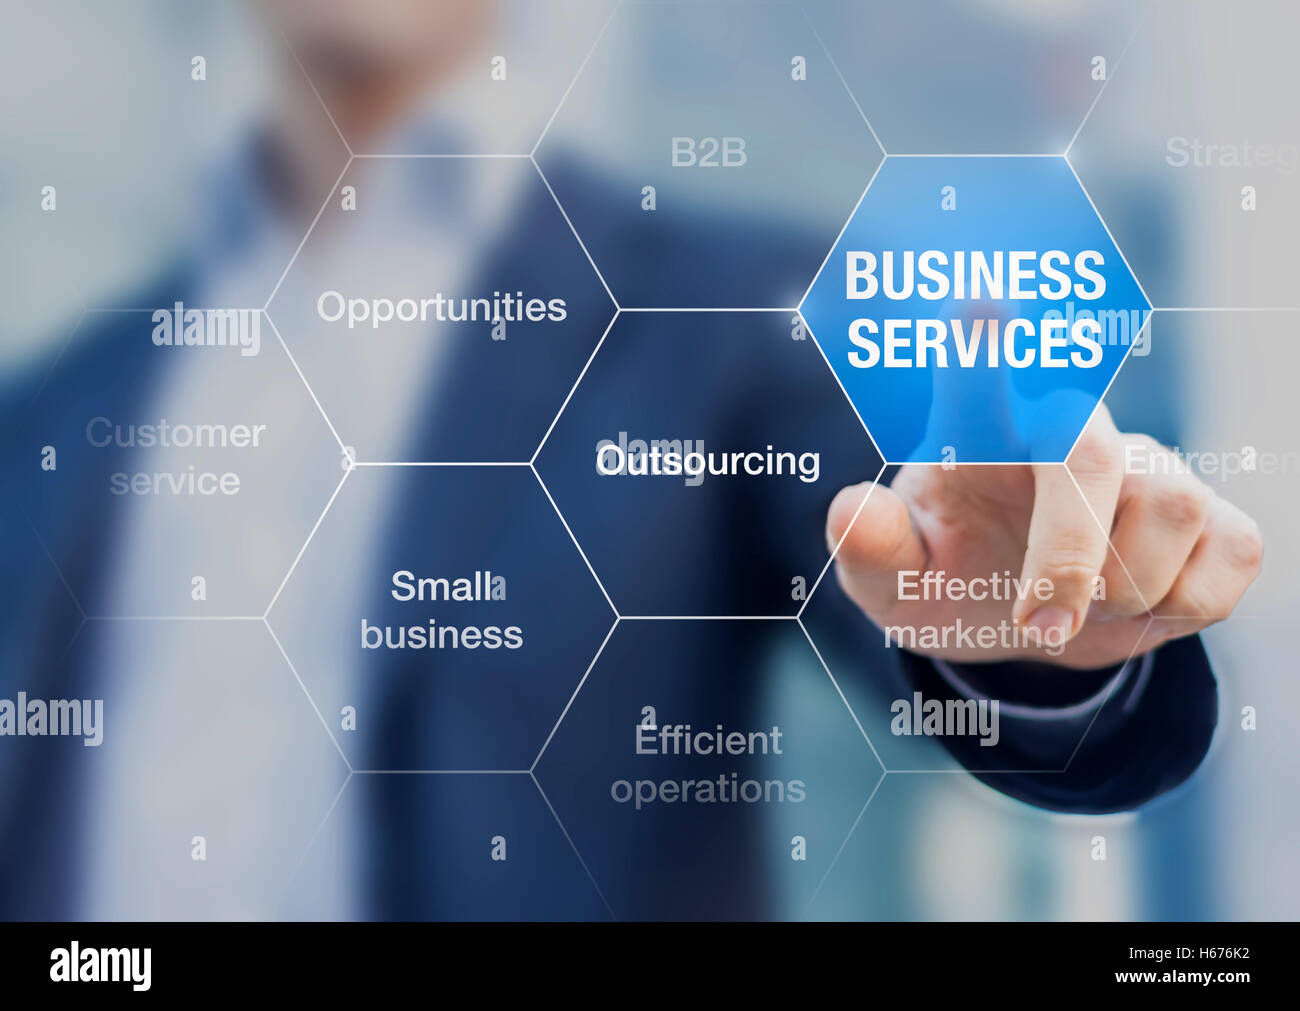 services business sector alamy concept